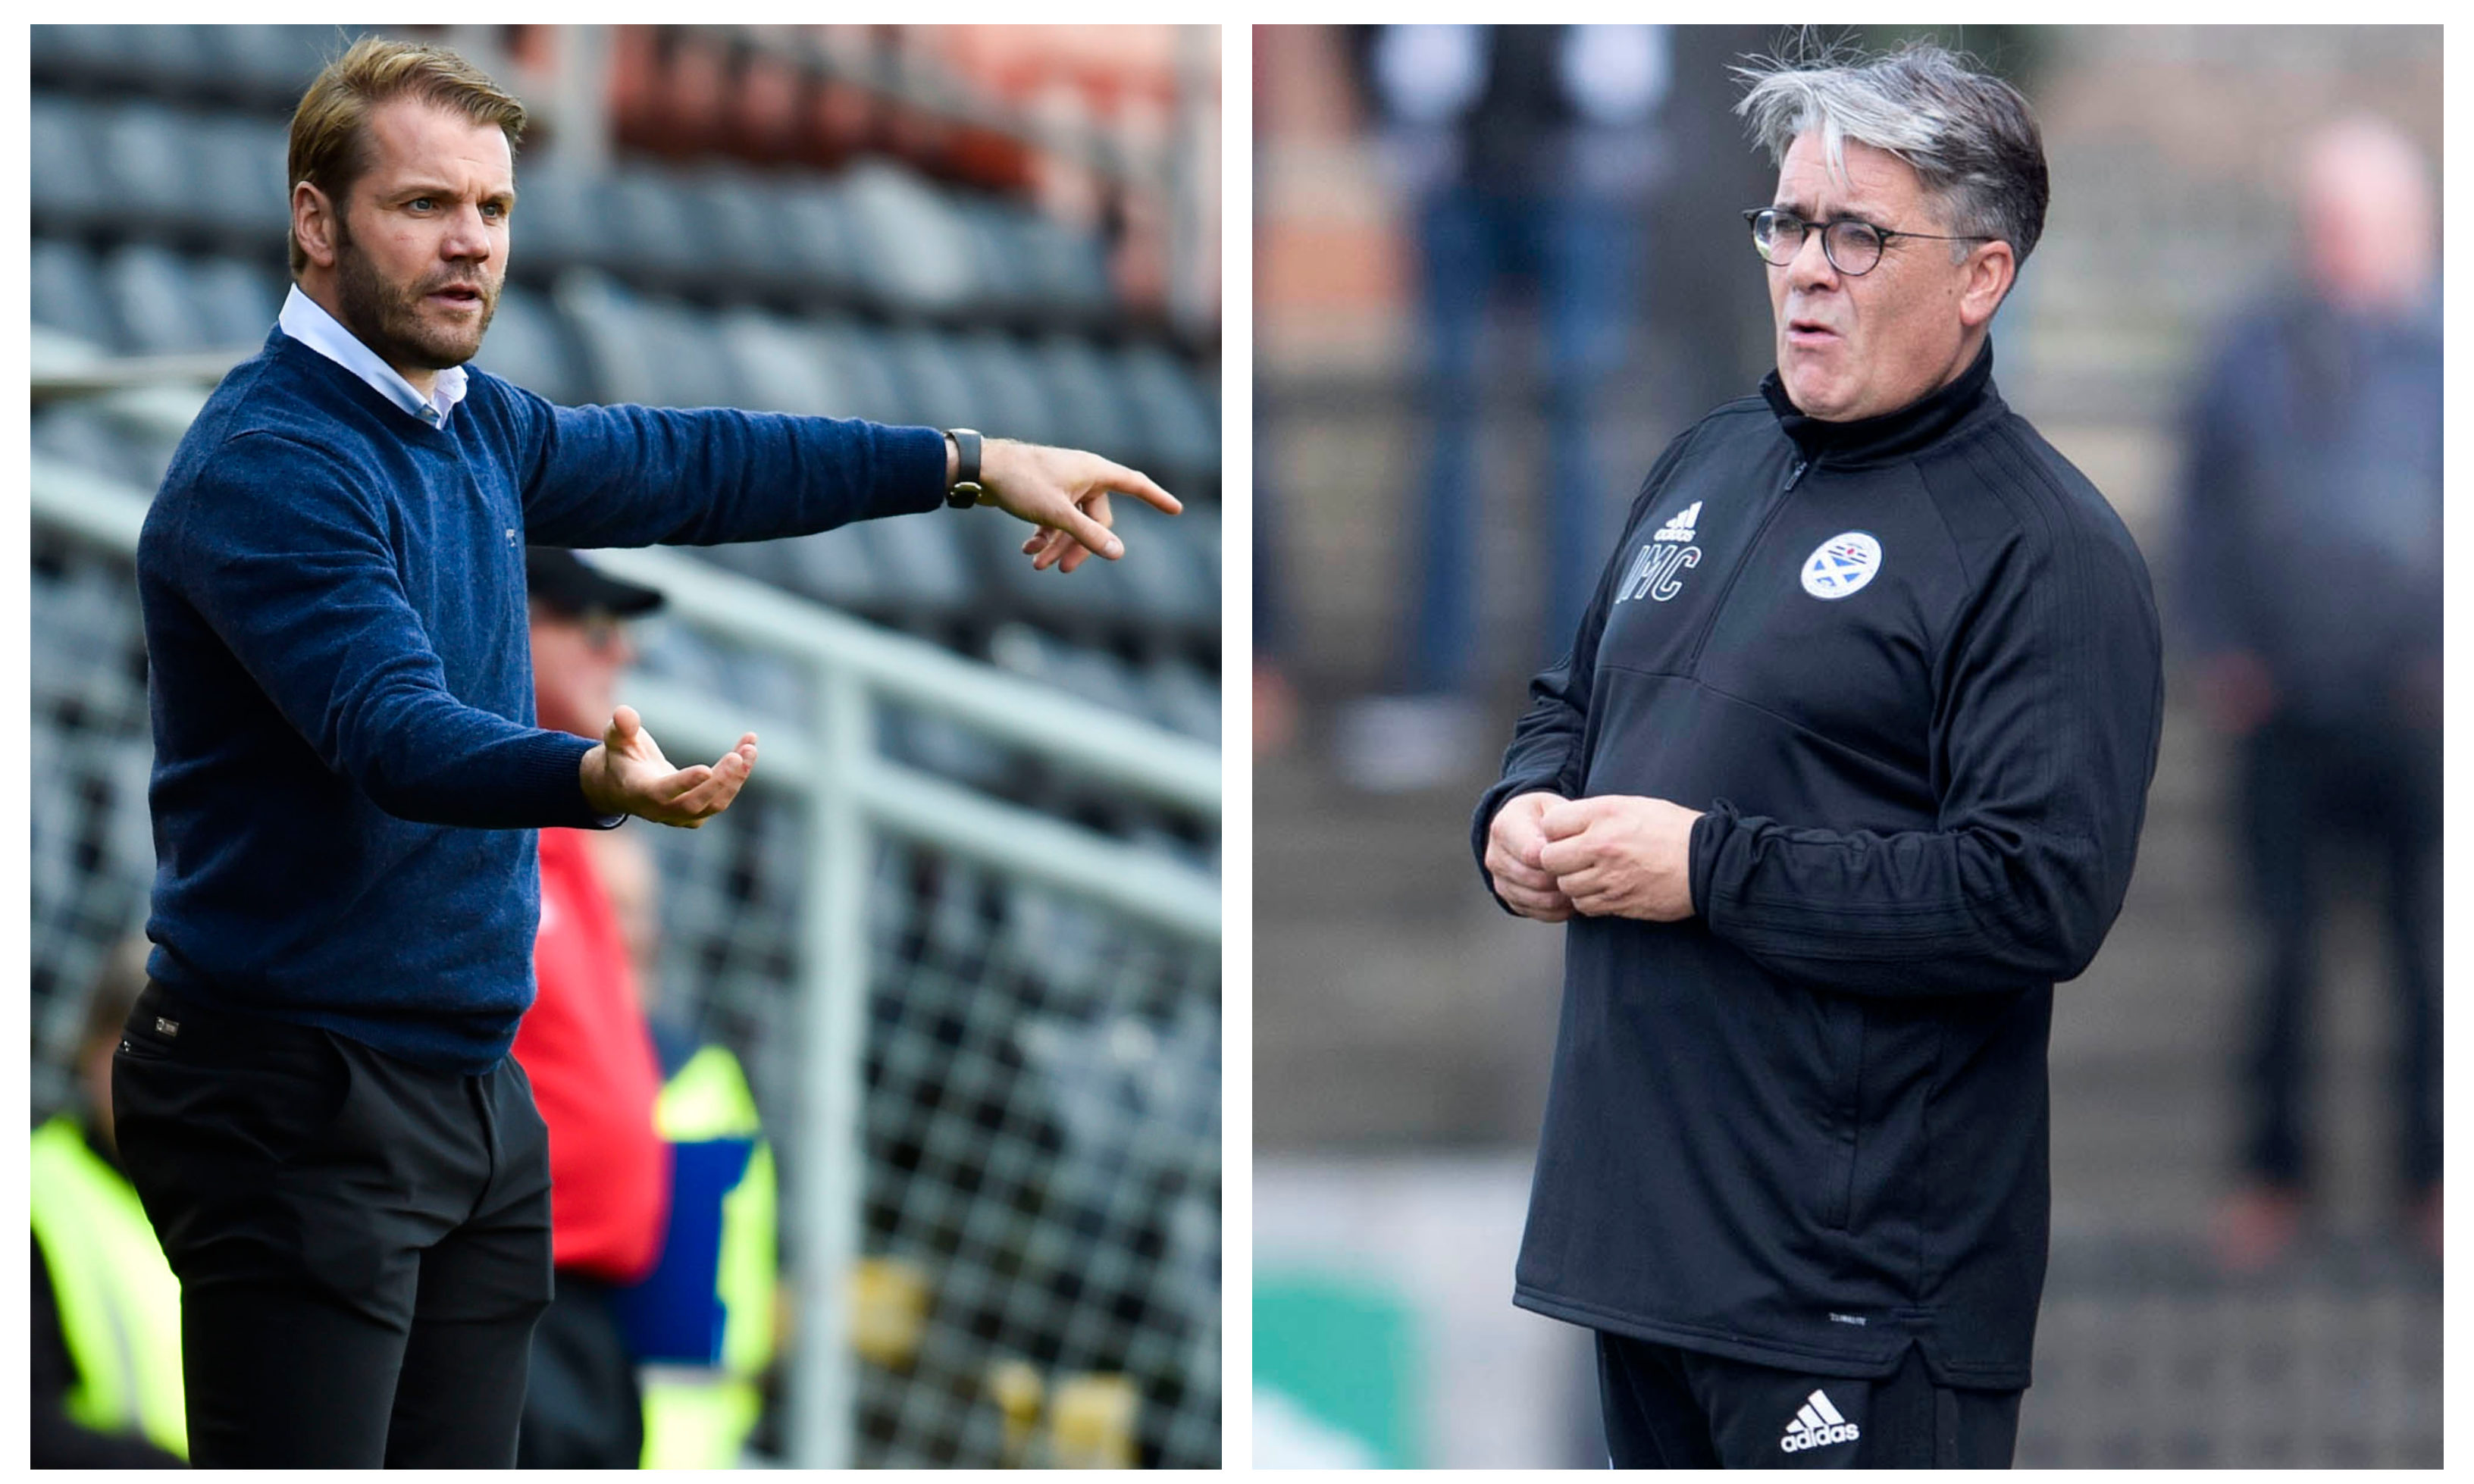 Robbie Neilson and Ian McCall has something of a war of words, however the United manager said he has respect for the Ayr boss.